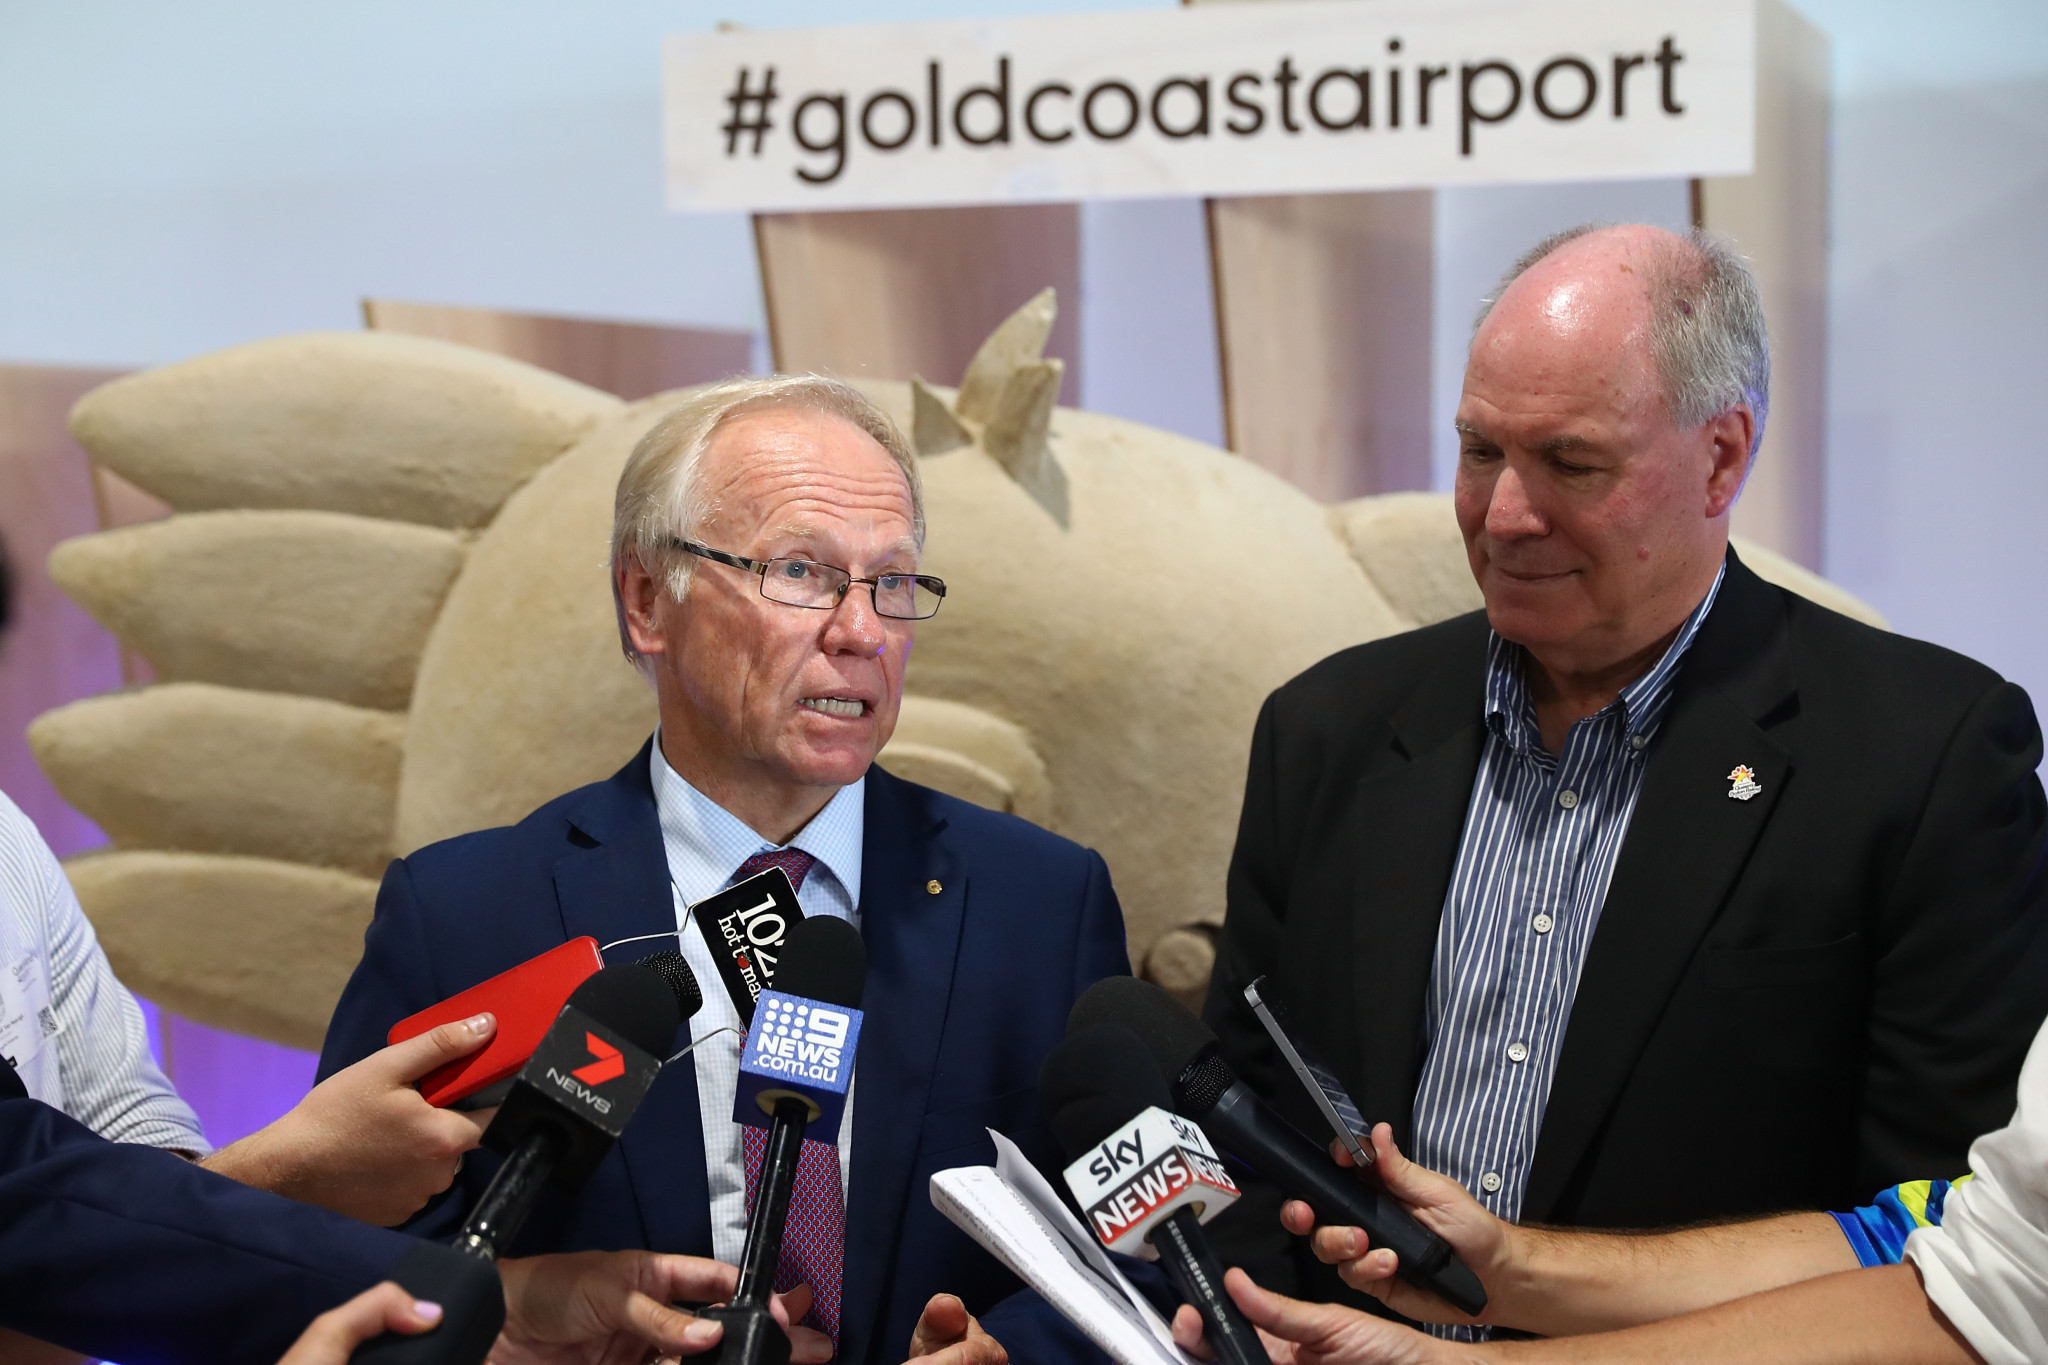 Gold Coast 2018 chairman Peter Beattie has urged people to use public transport during the Commonwealth Games ©Getty Images